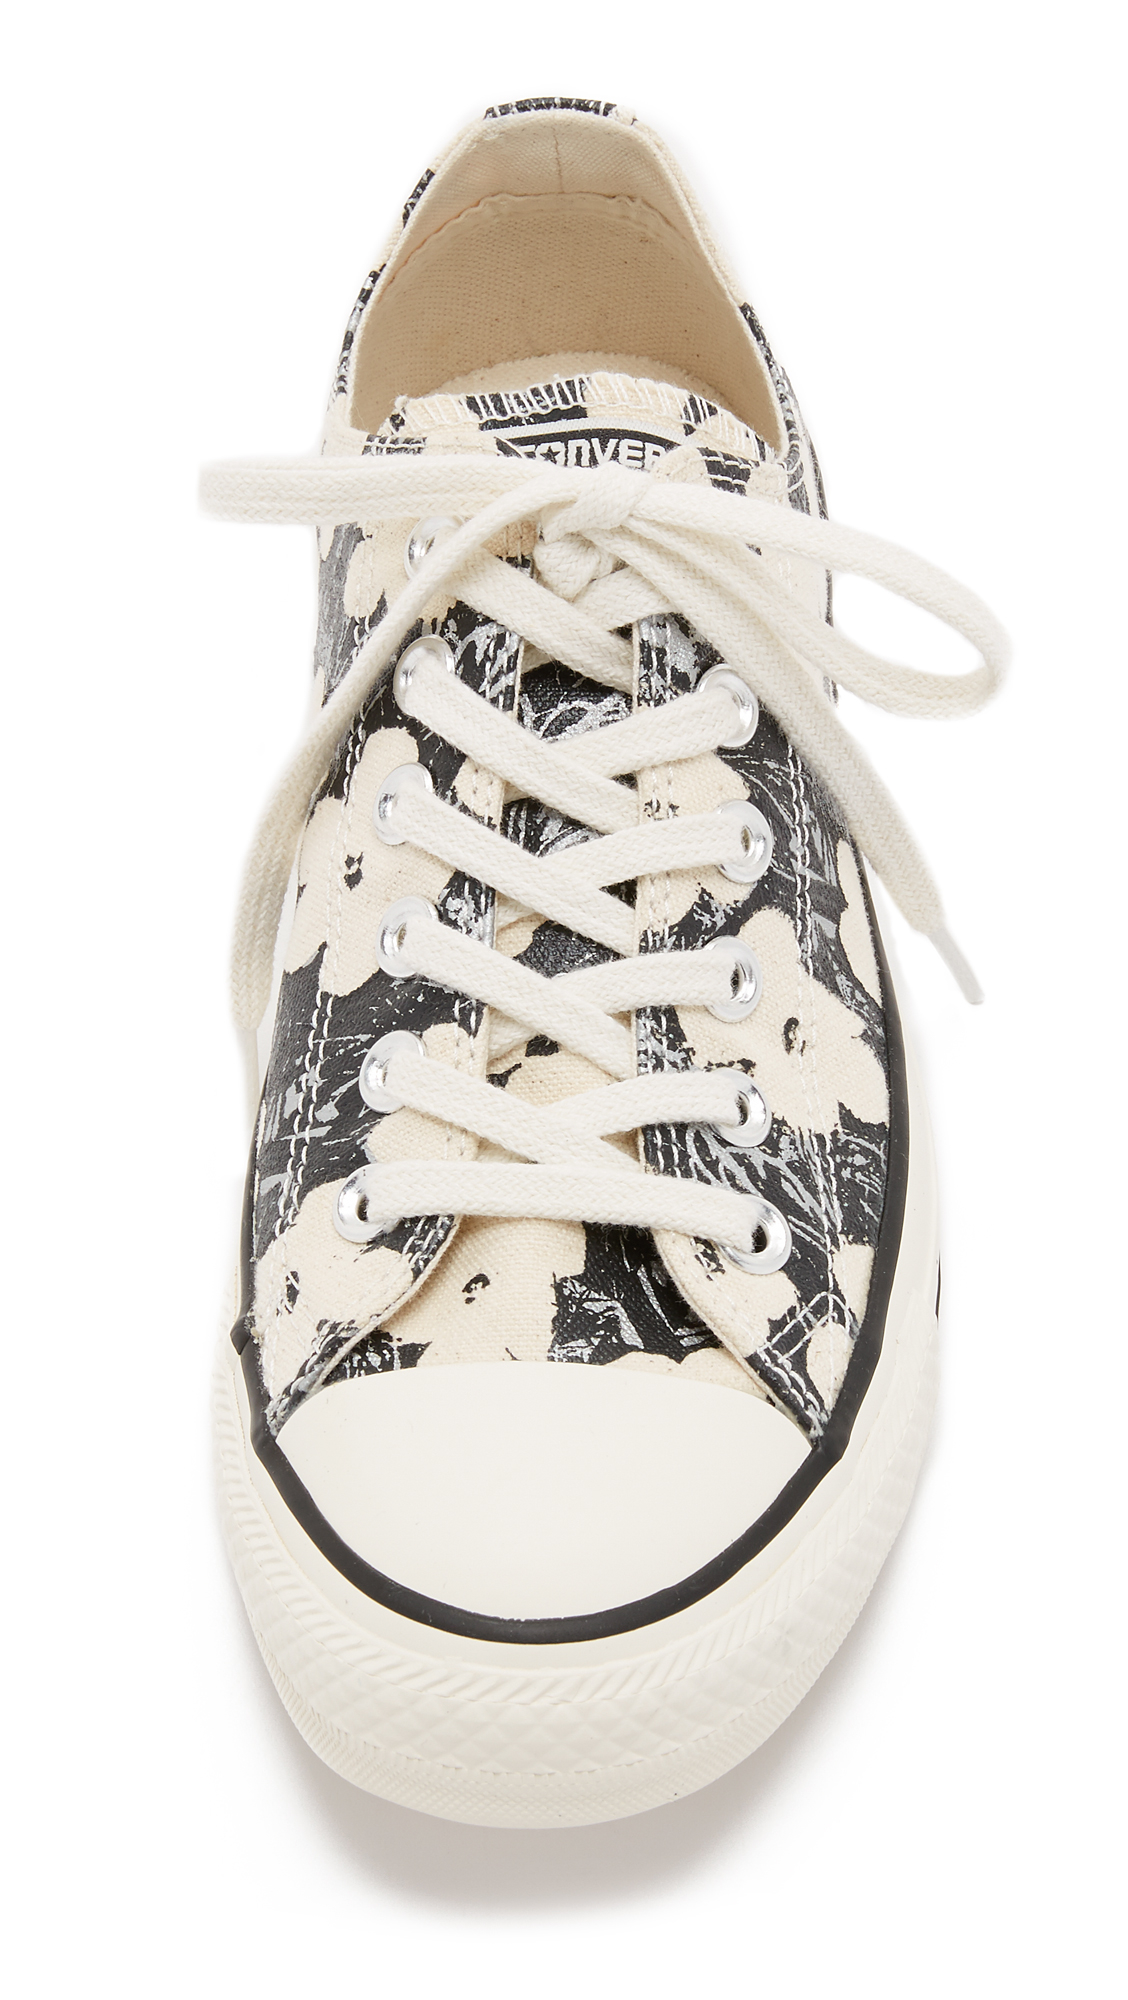 Converse Andy Warhol Shoes C